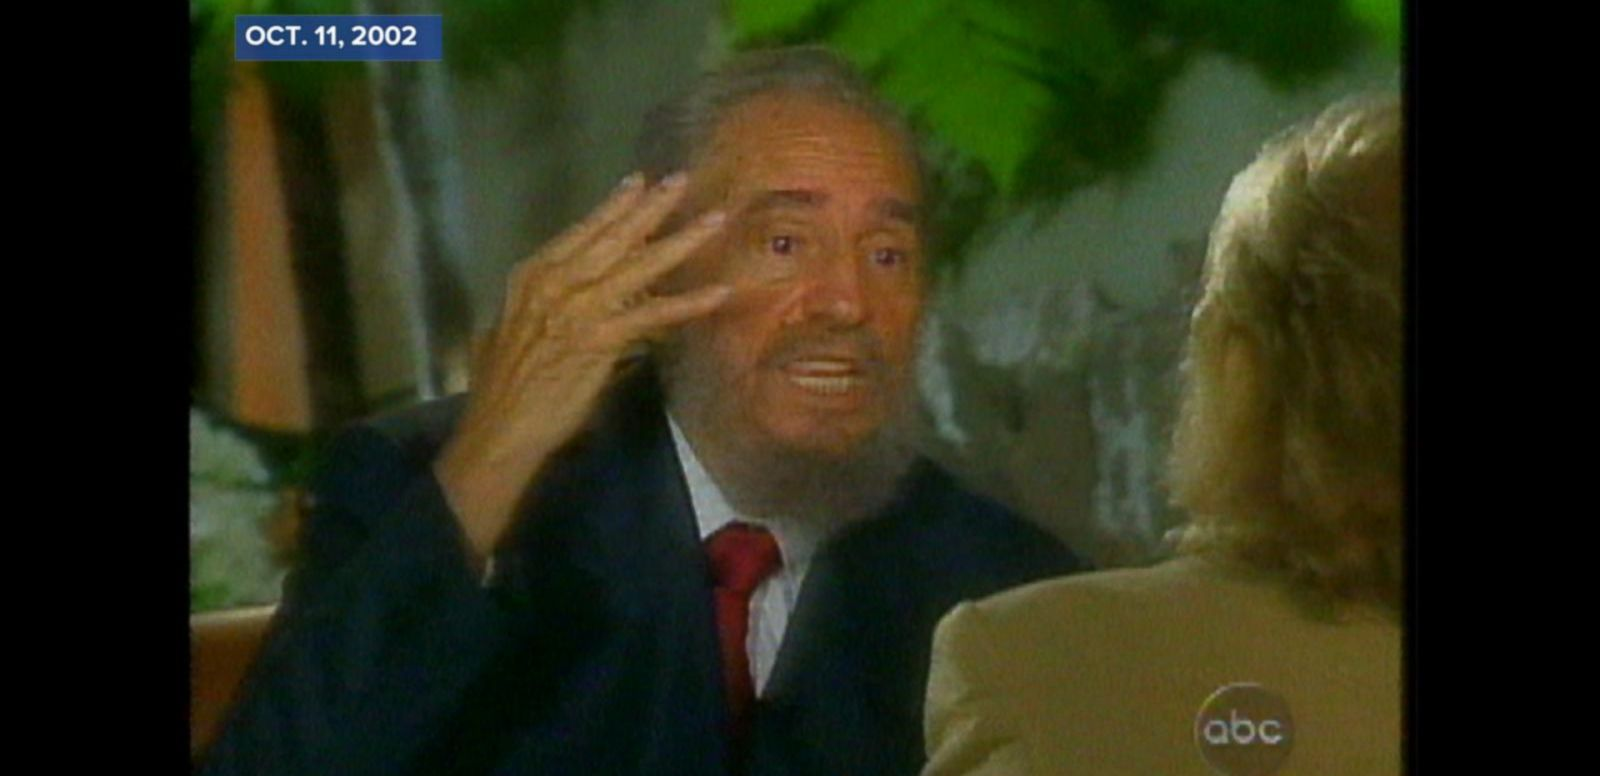 VIDEO: Oct. 11, 2002: Castro imagines Cuba's economic future if the U.S. were to lift its embargo.